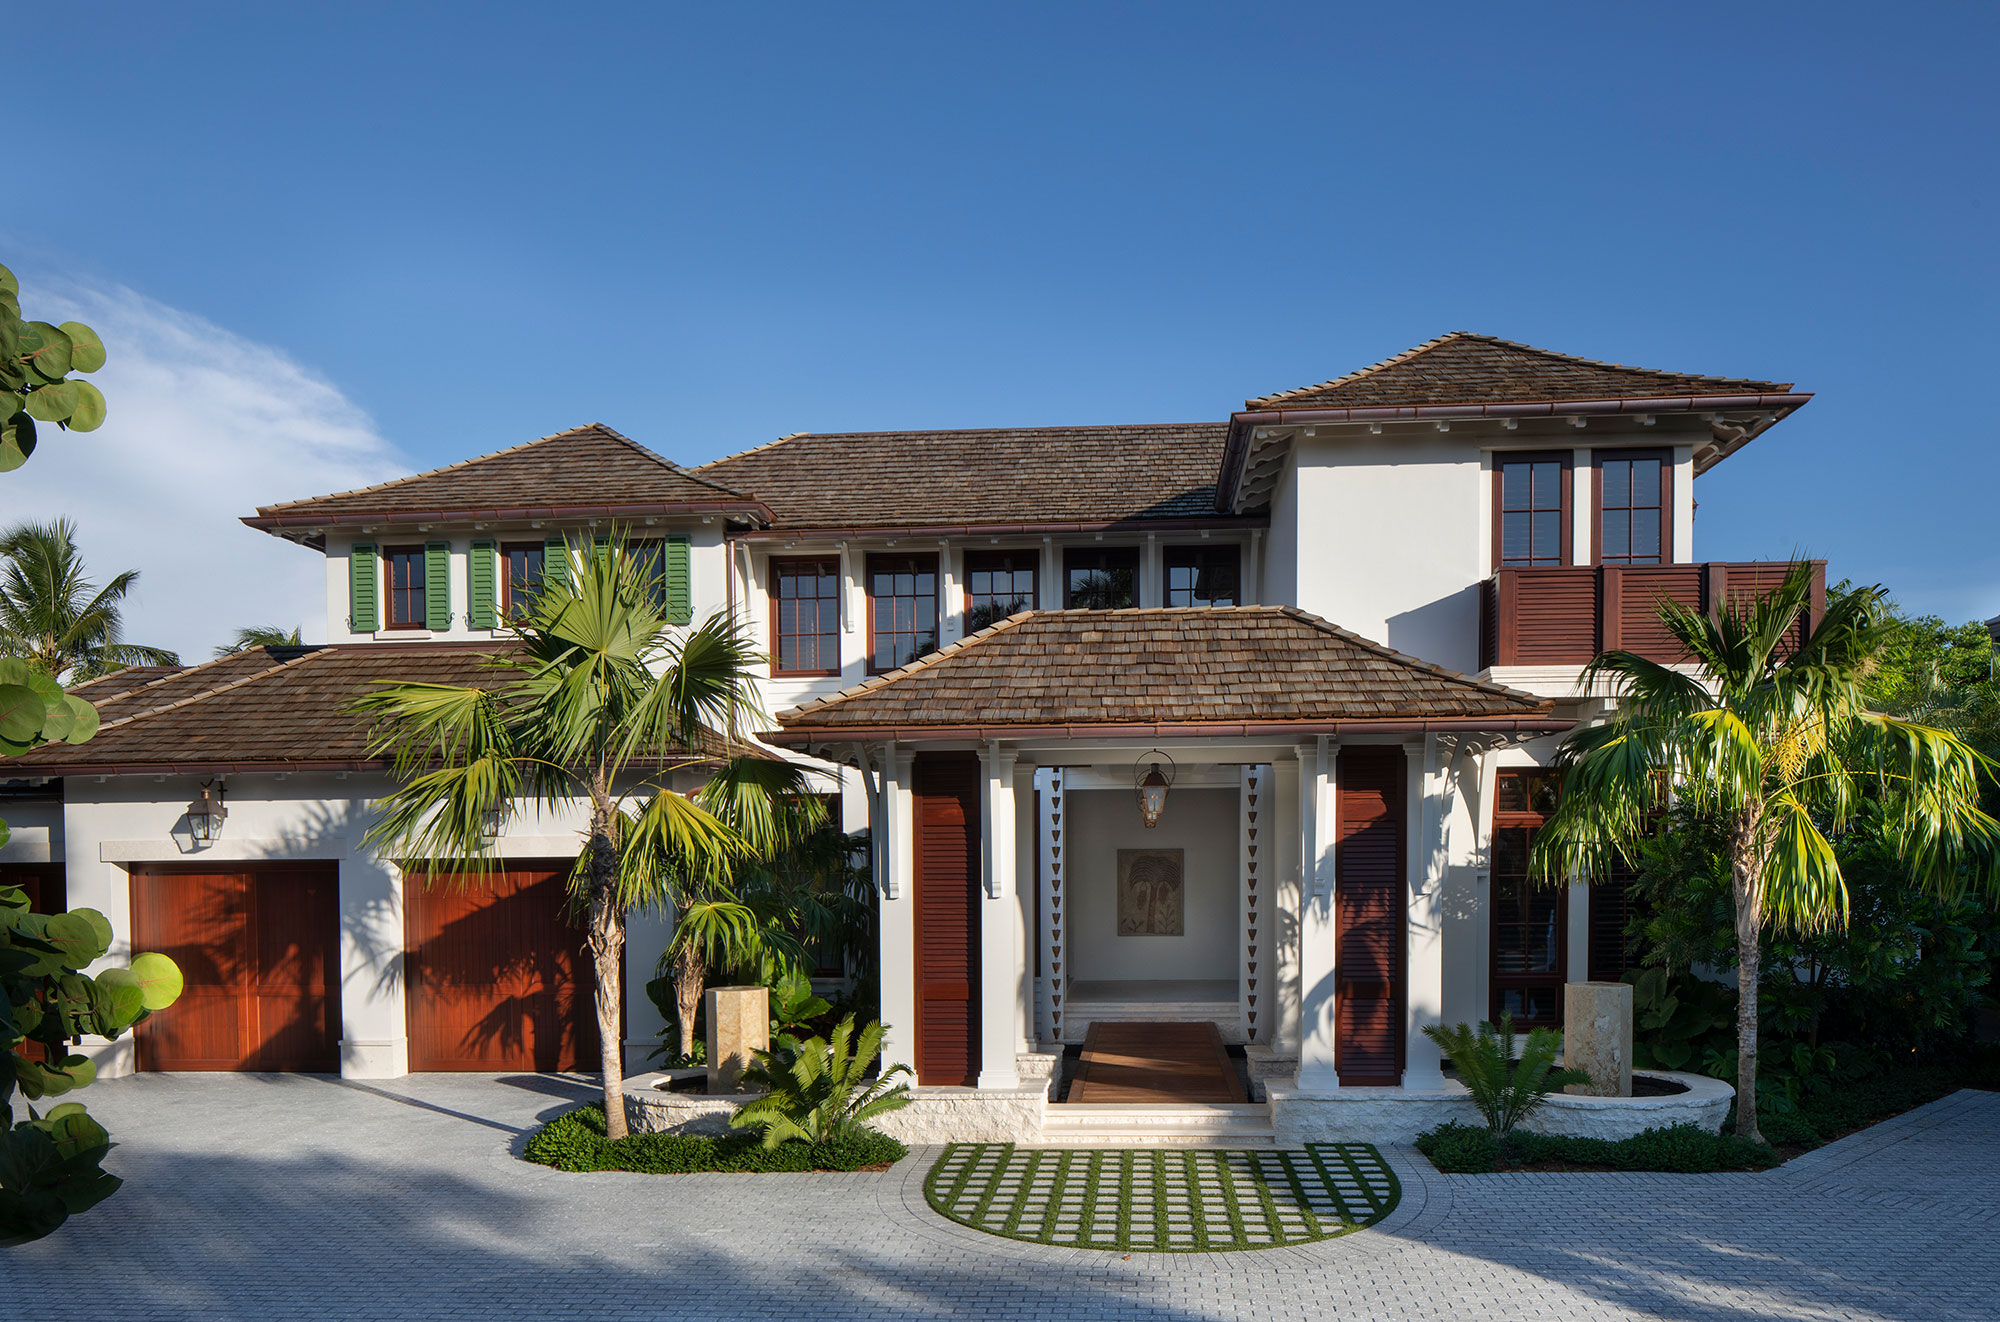 KURTZ HOMES NAPLES